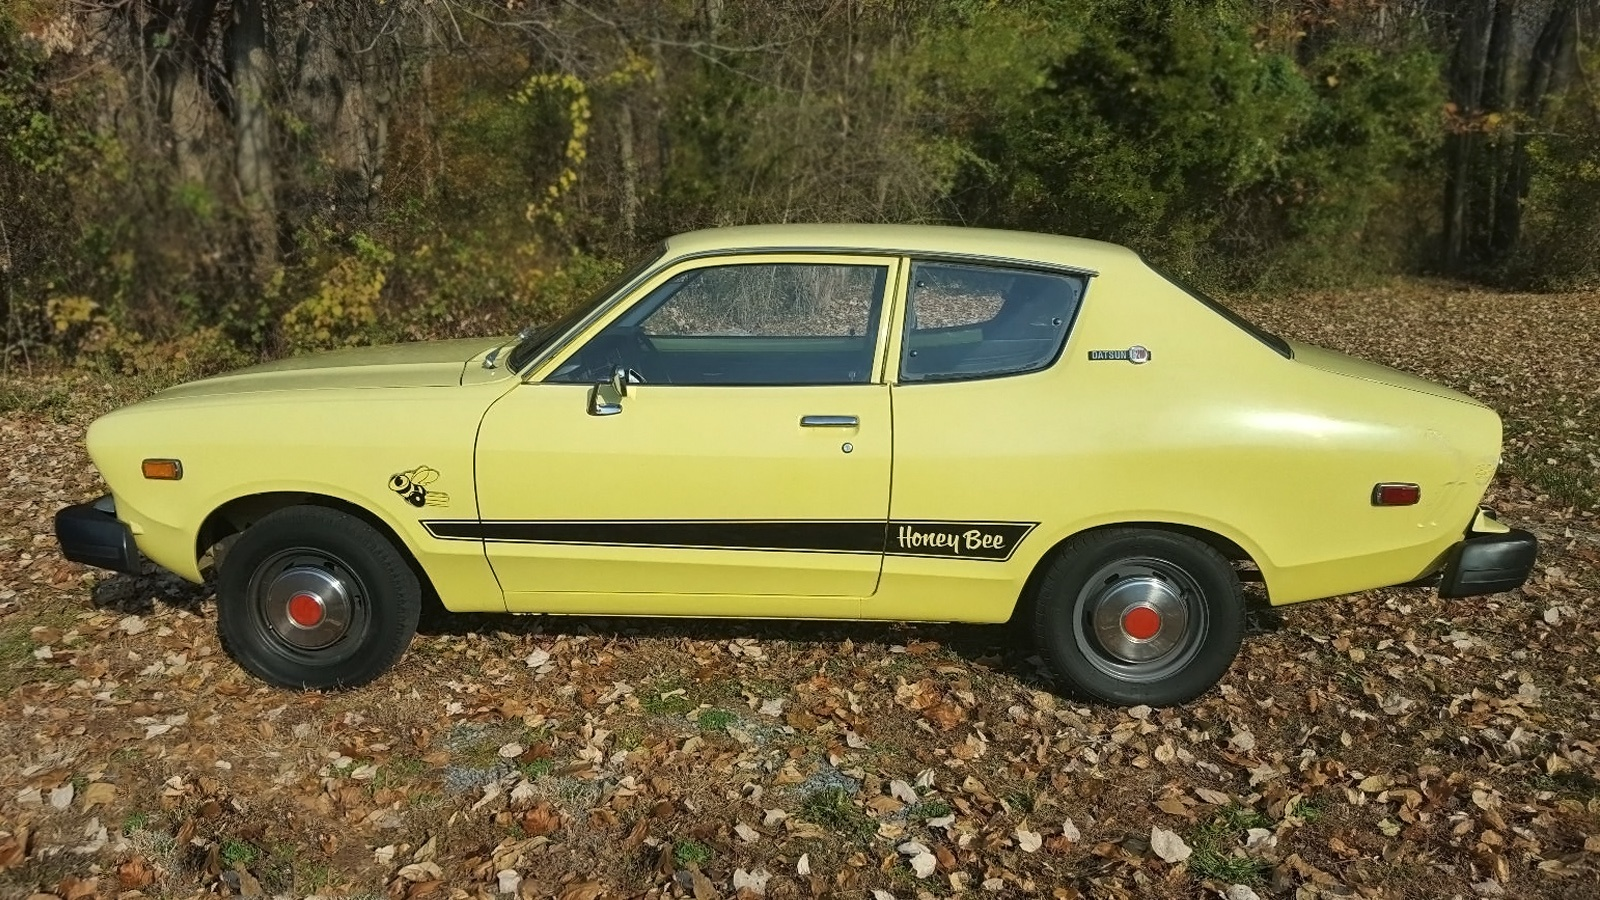 B Honey Bee 1977 Datsun B 210 Honey Bee